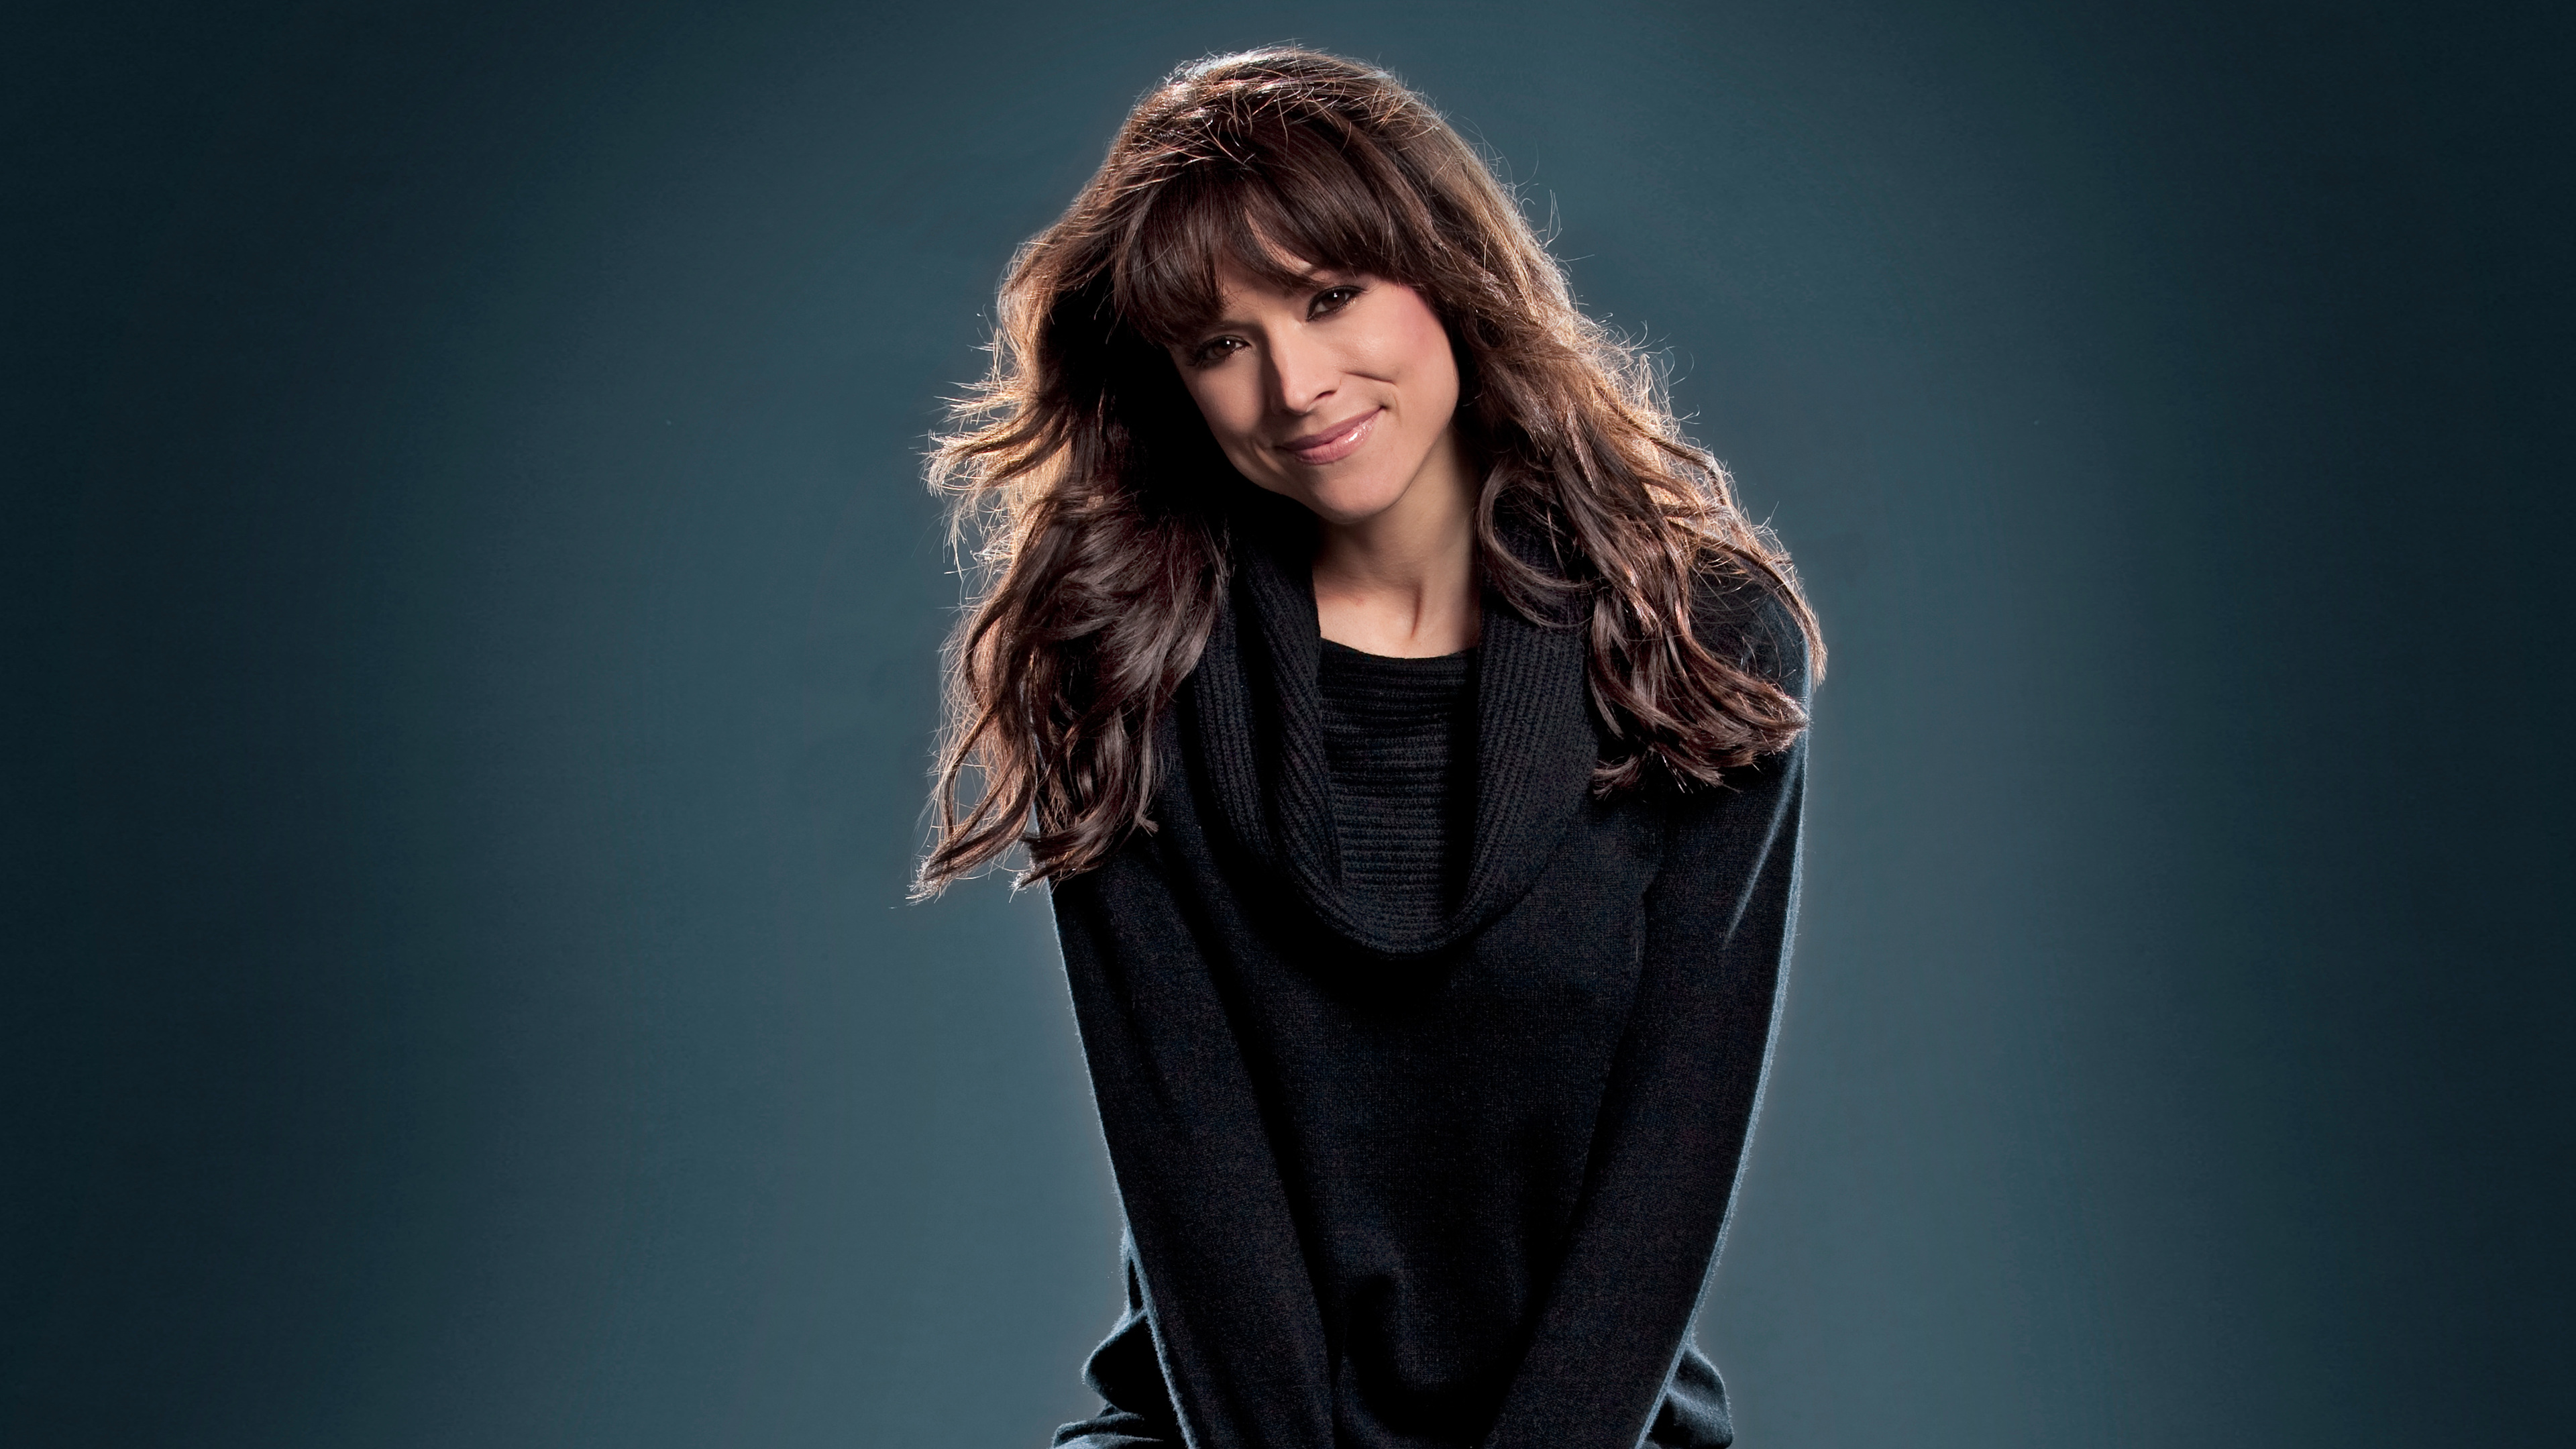 liz vassey 1536952026 - Liz Vassey - liz vassey wallpapers, hd-wallpapers, girls wallpapers, celebrities wallpapers, 5k wallpapers, 4k-wallpapers